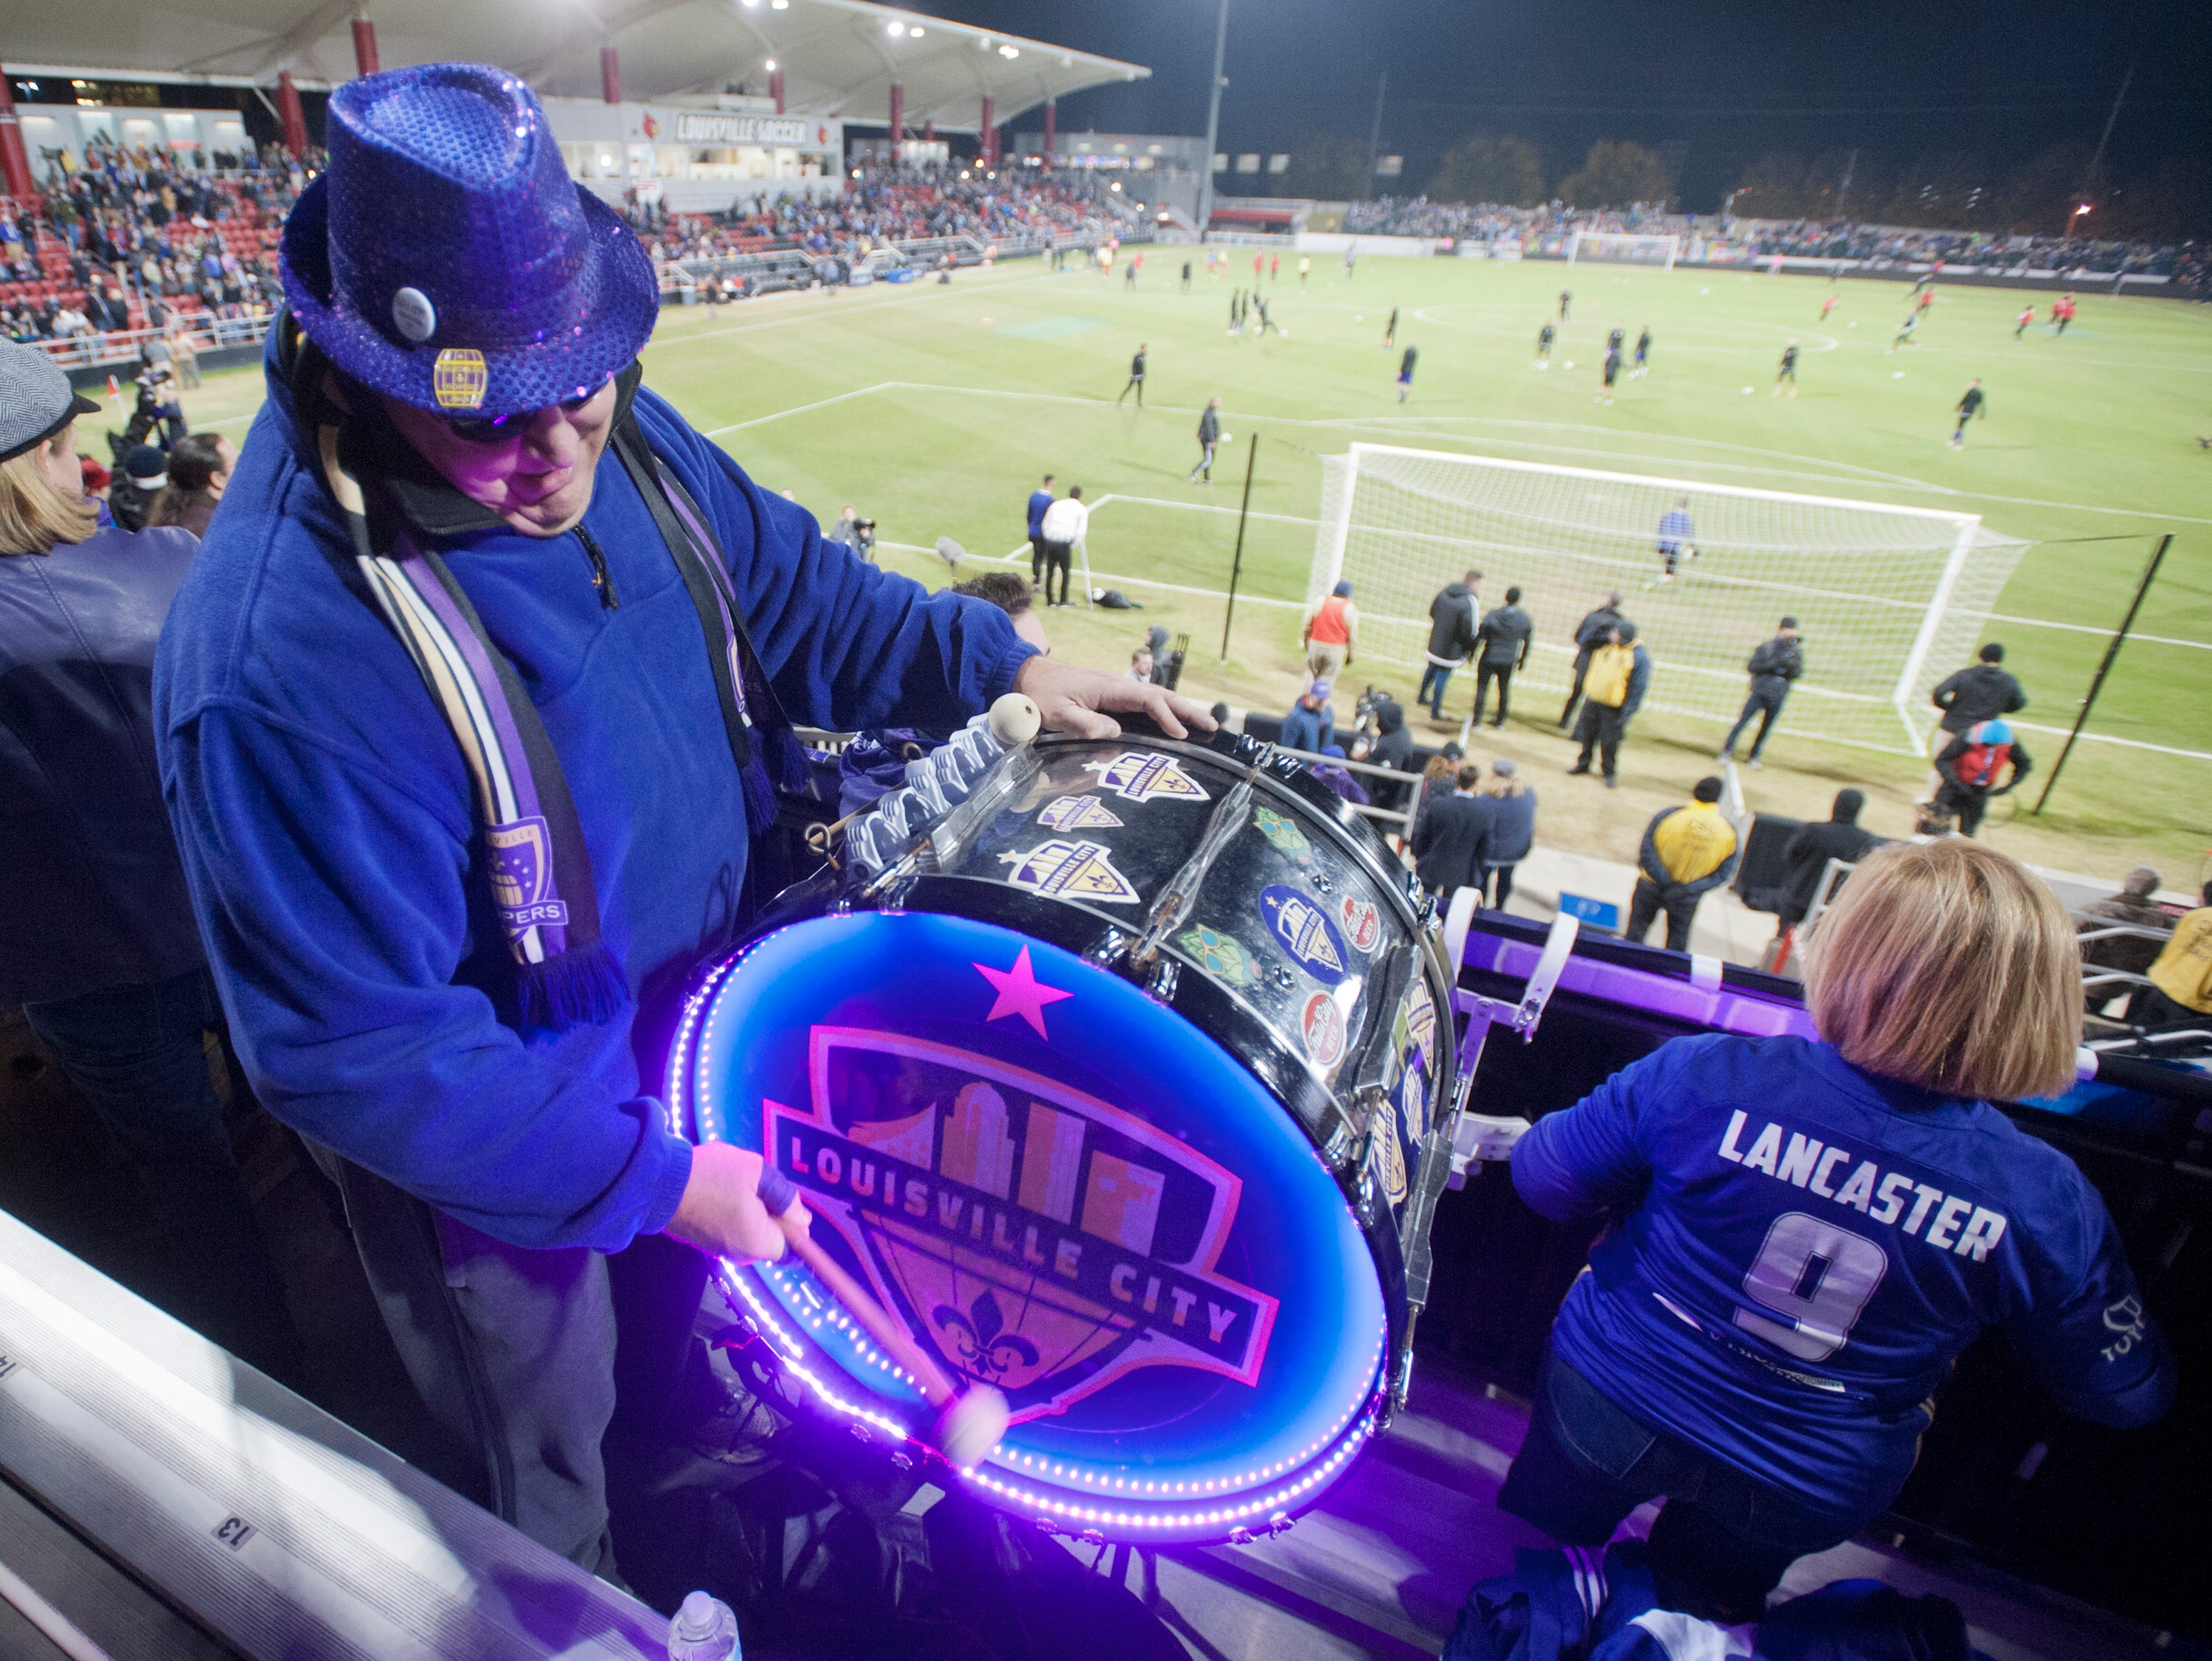 Chris Flint of Jeffersontown drums up some support for the nome team as Louisville City FC takes on the Phoenix Rising FC for the 2018 USL Cup.November 08, 2018